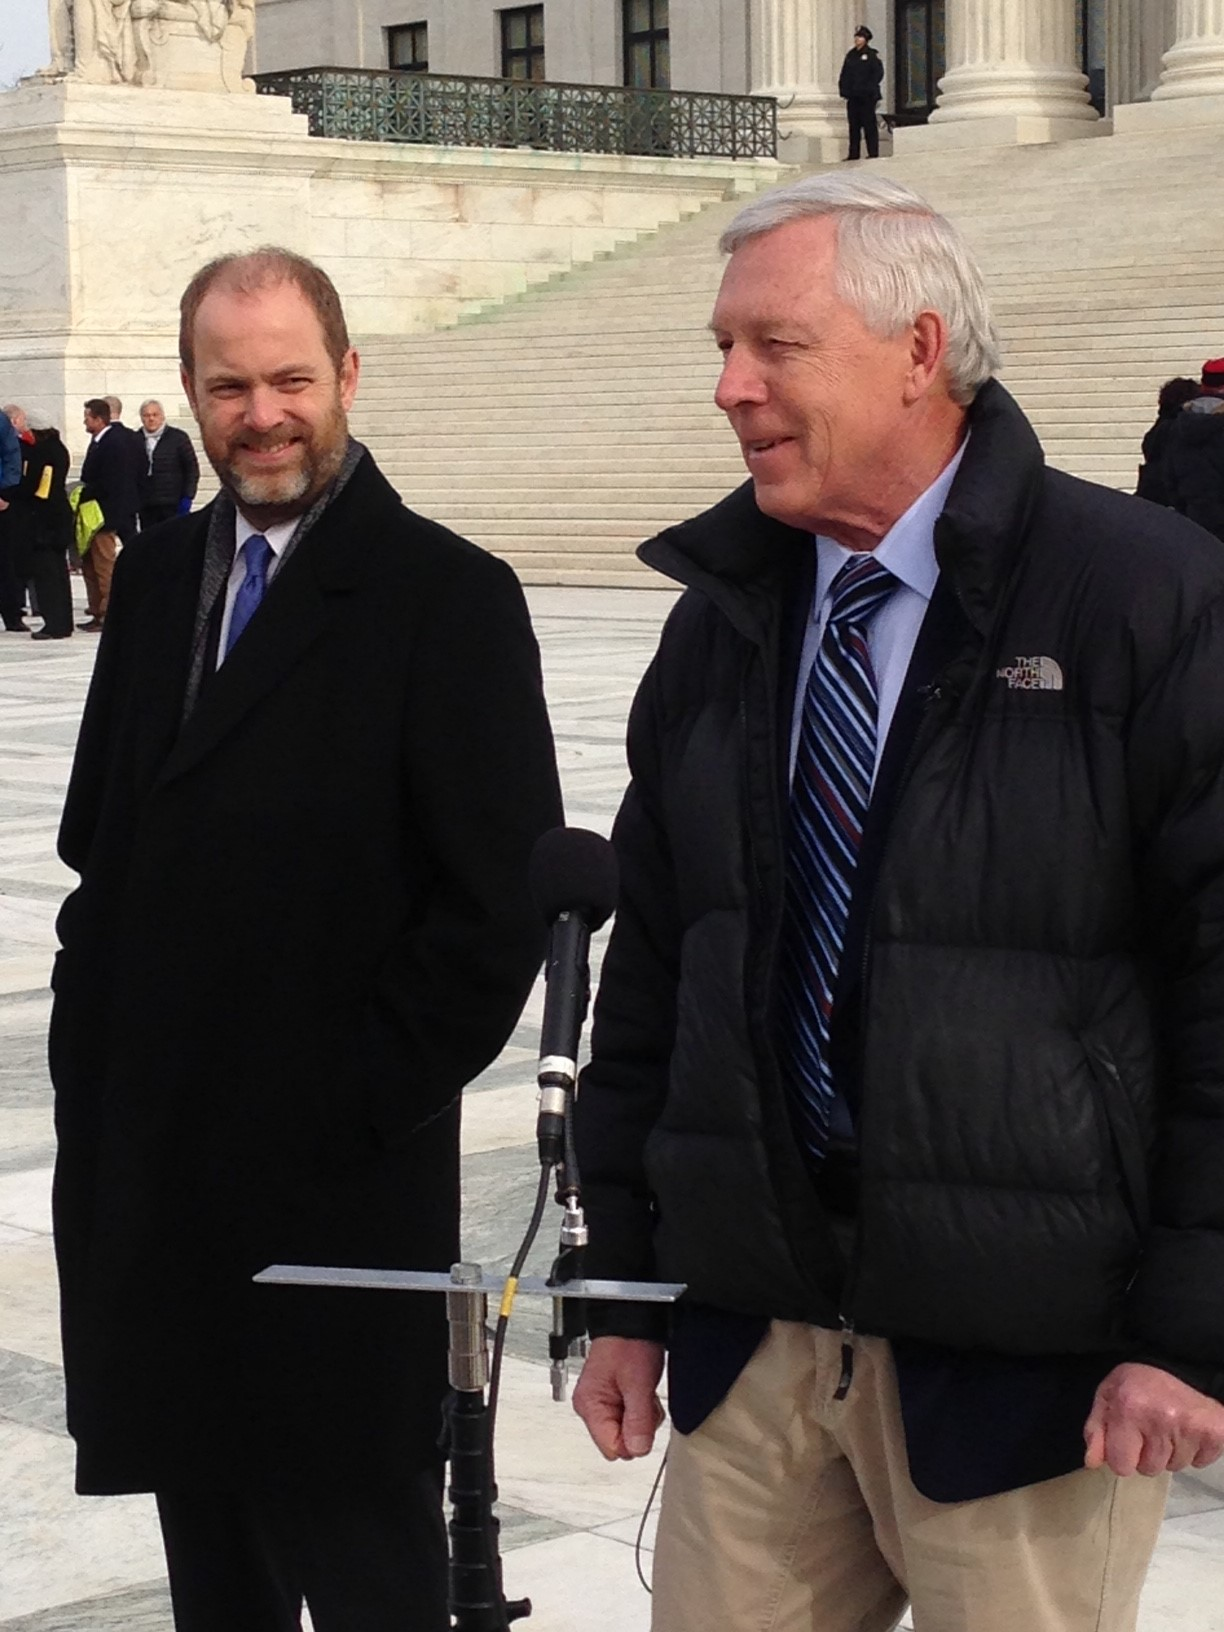 Alaskan outdoorsman John Sturgeon (R) , traveled to Washington to watch the Supreme Court hear his case against the National Park Service. (M. Snowiss\VOA)